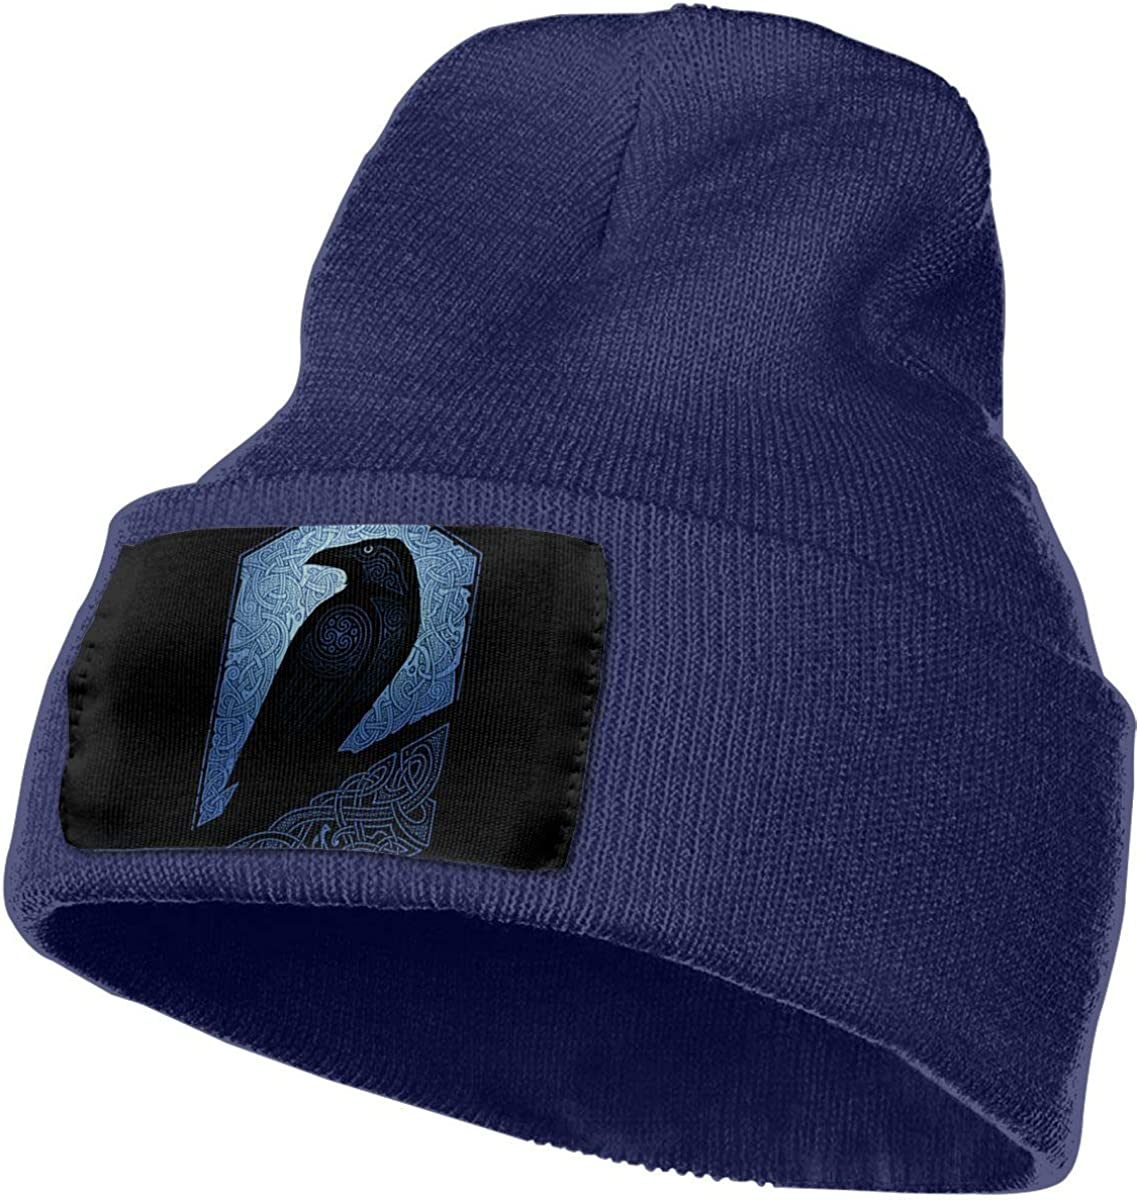 Crow Unisex Stylish Kintted Beanie Hat Skull Headwear Cap